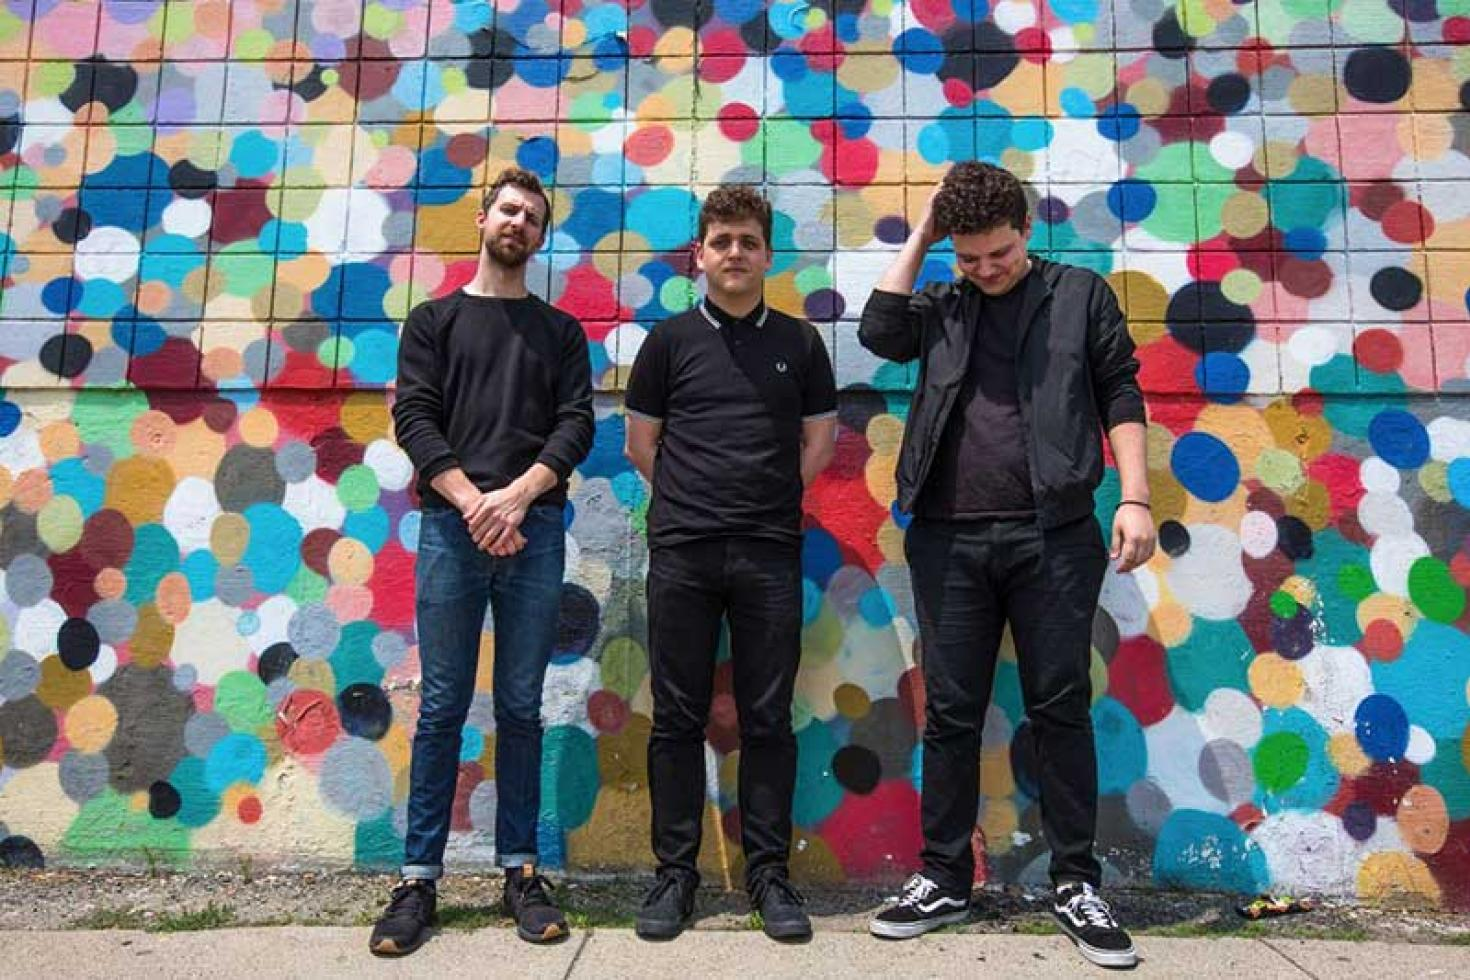 Somos release first single from upcoming album